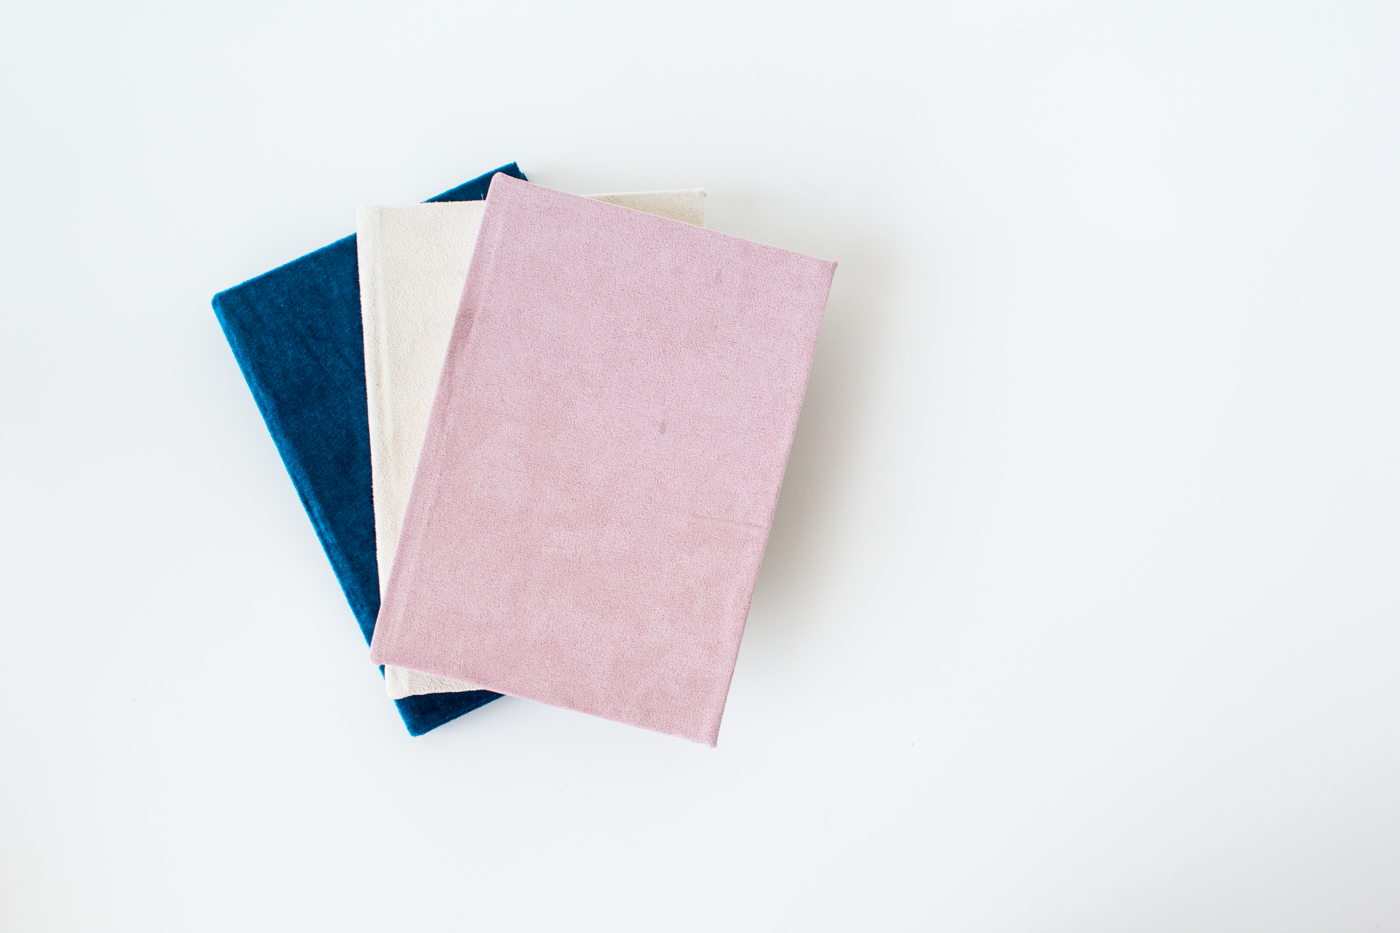 DIY Velvet book covers | @fallfordiy